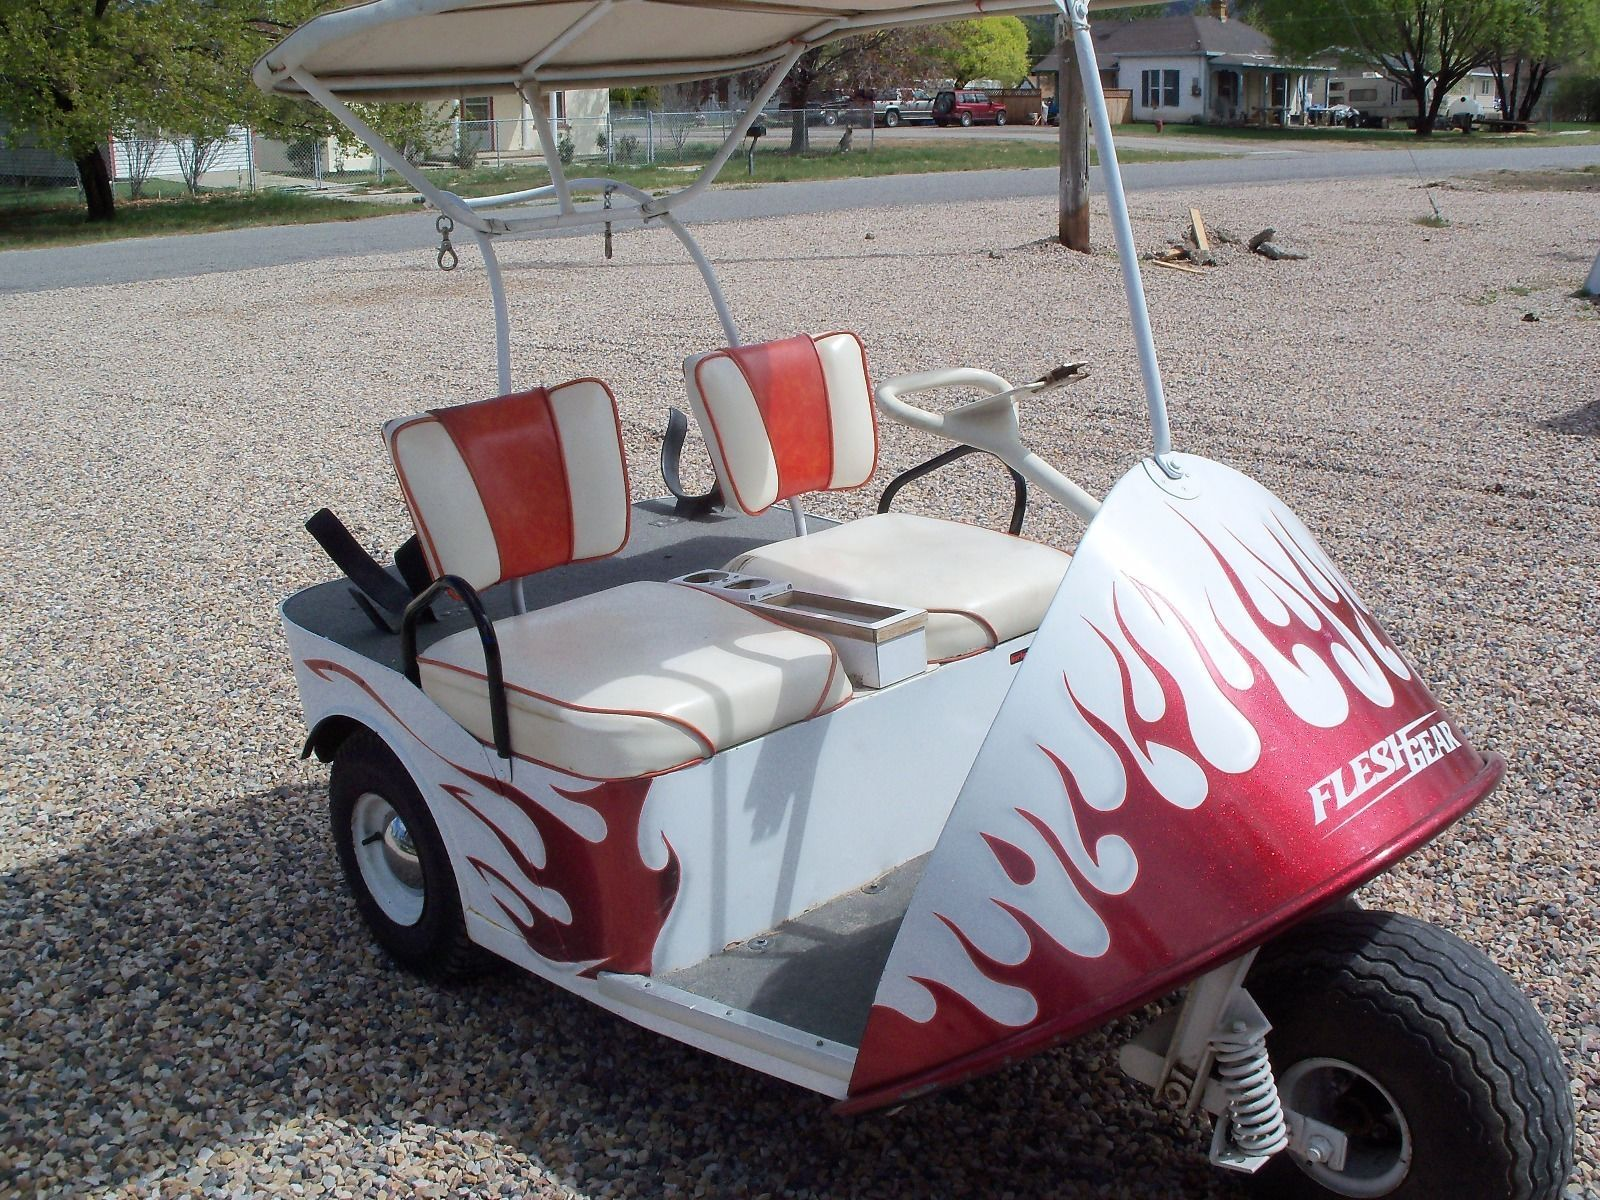 Vintage 1967 Thunder bird golf cart | Golf carts for sale ... on car electric volkswagen, car electric chrysler, car battery cart, car electric fan, car electric car, car electric chevrolet,